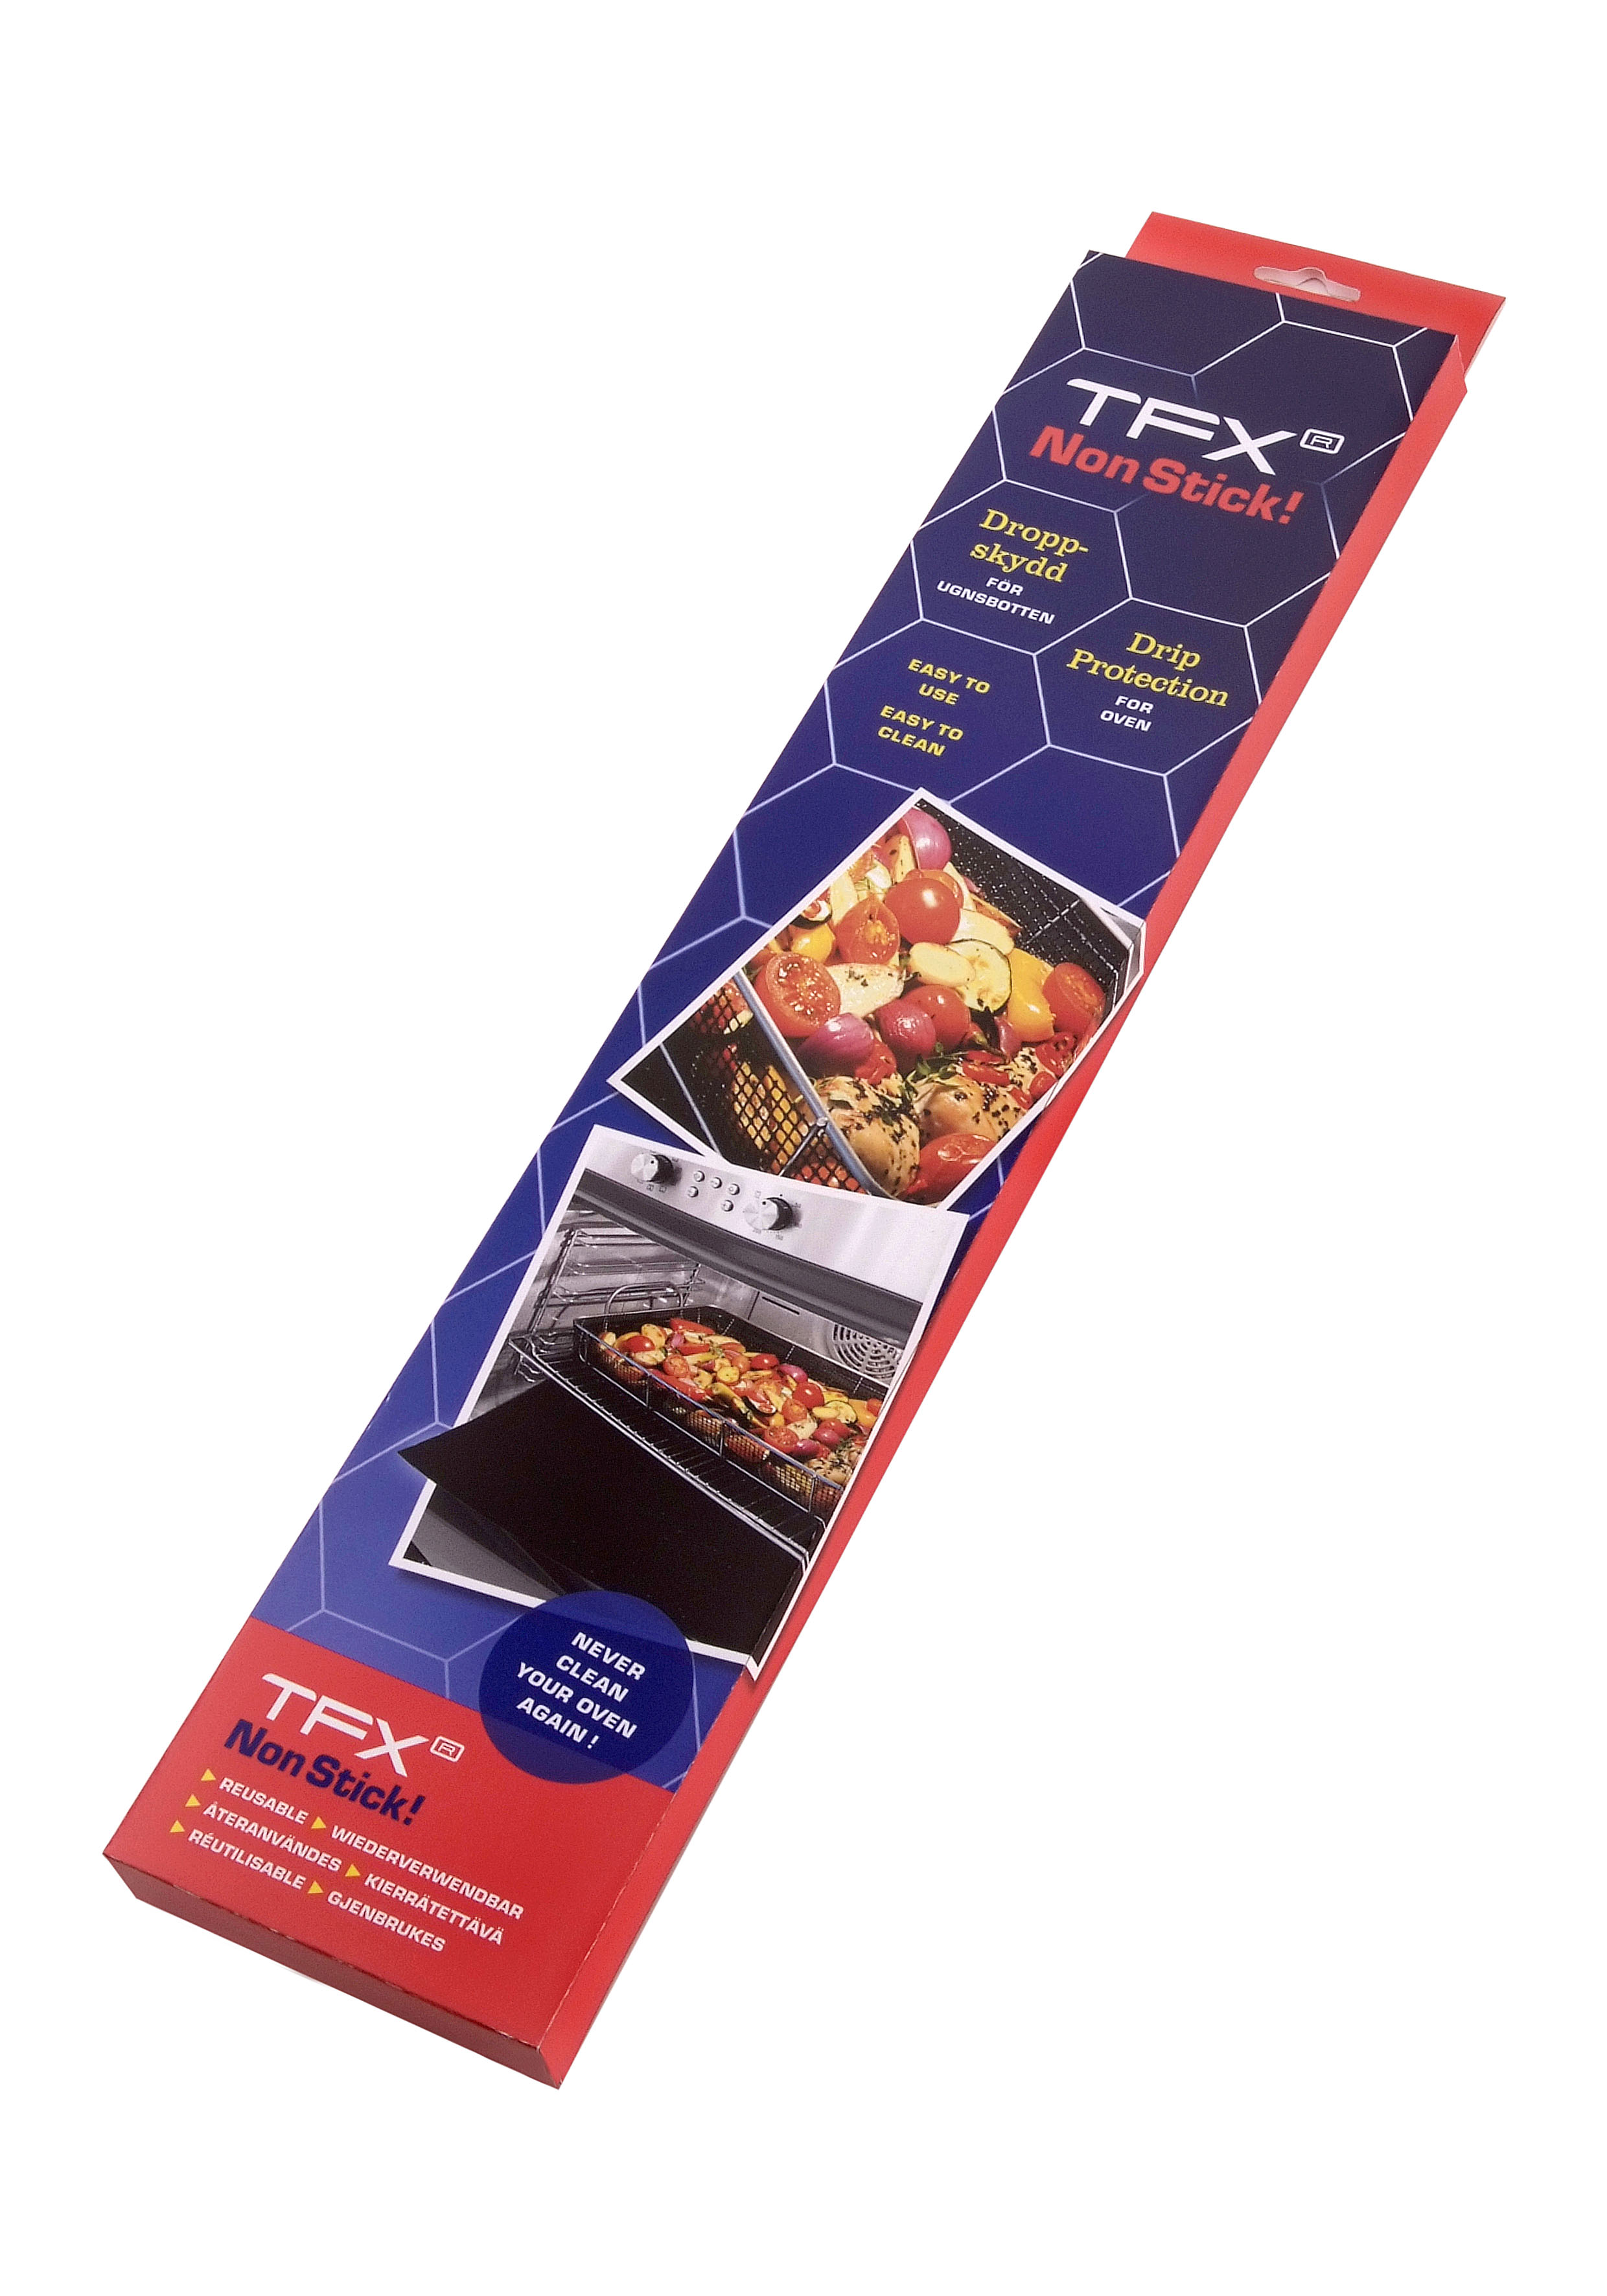 TFX Non Stick! Drop Protection